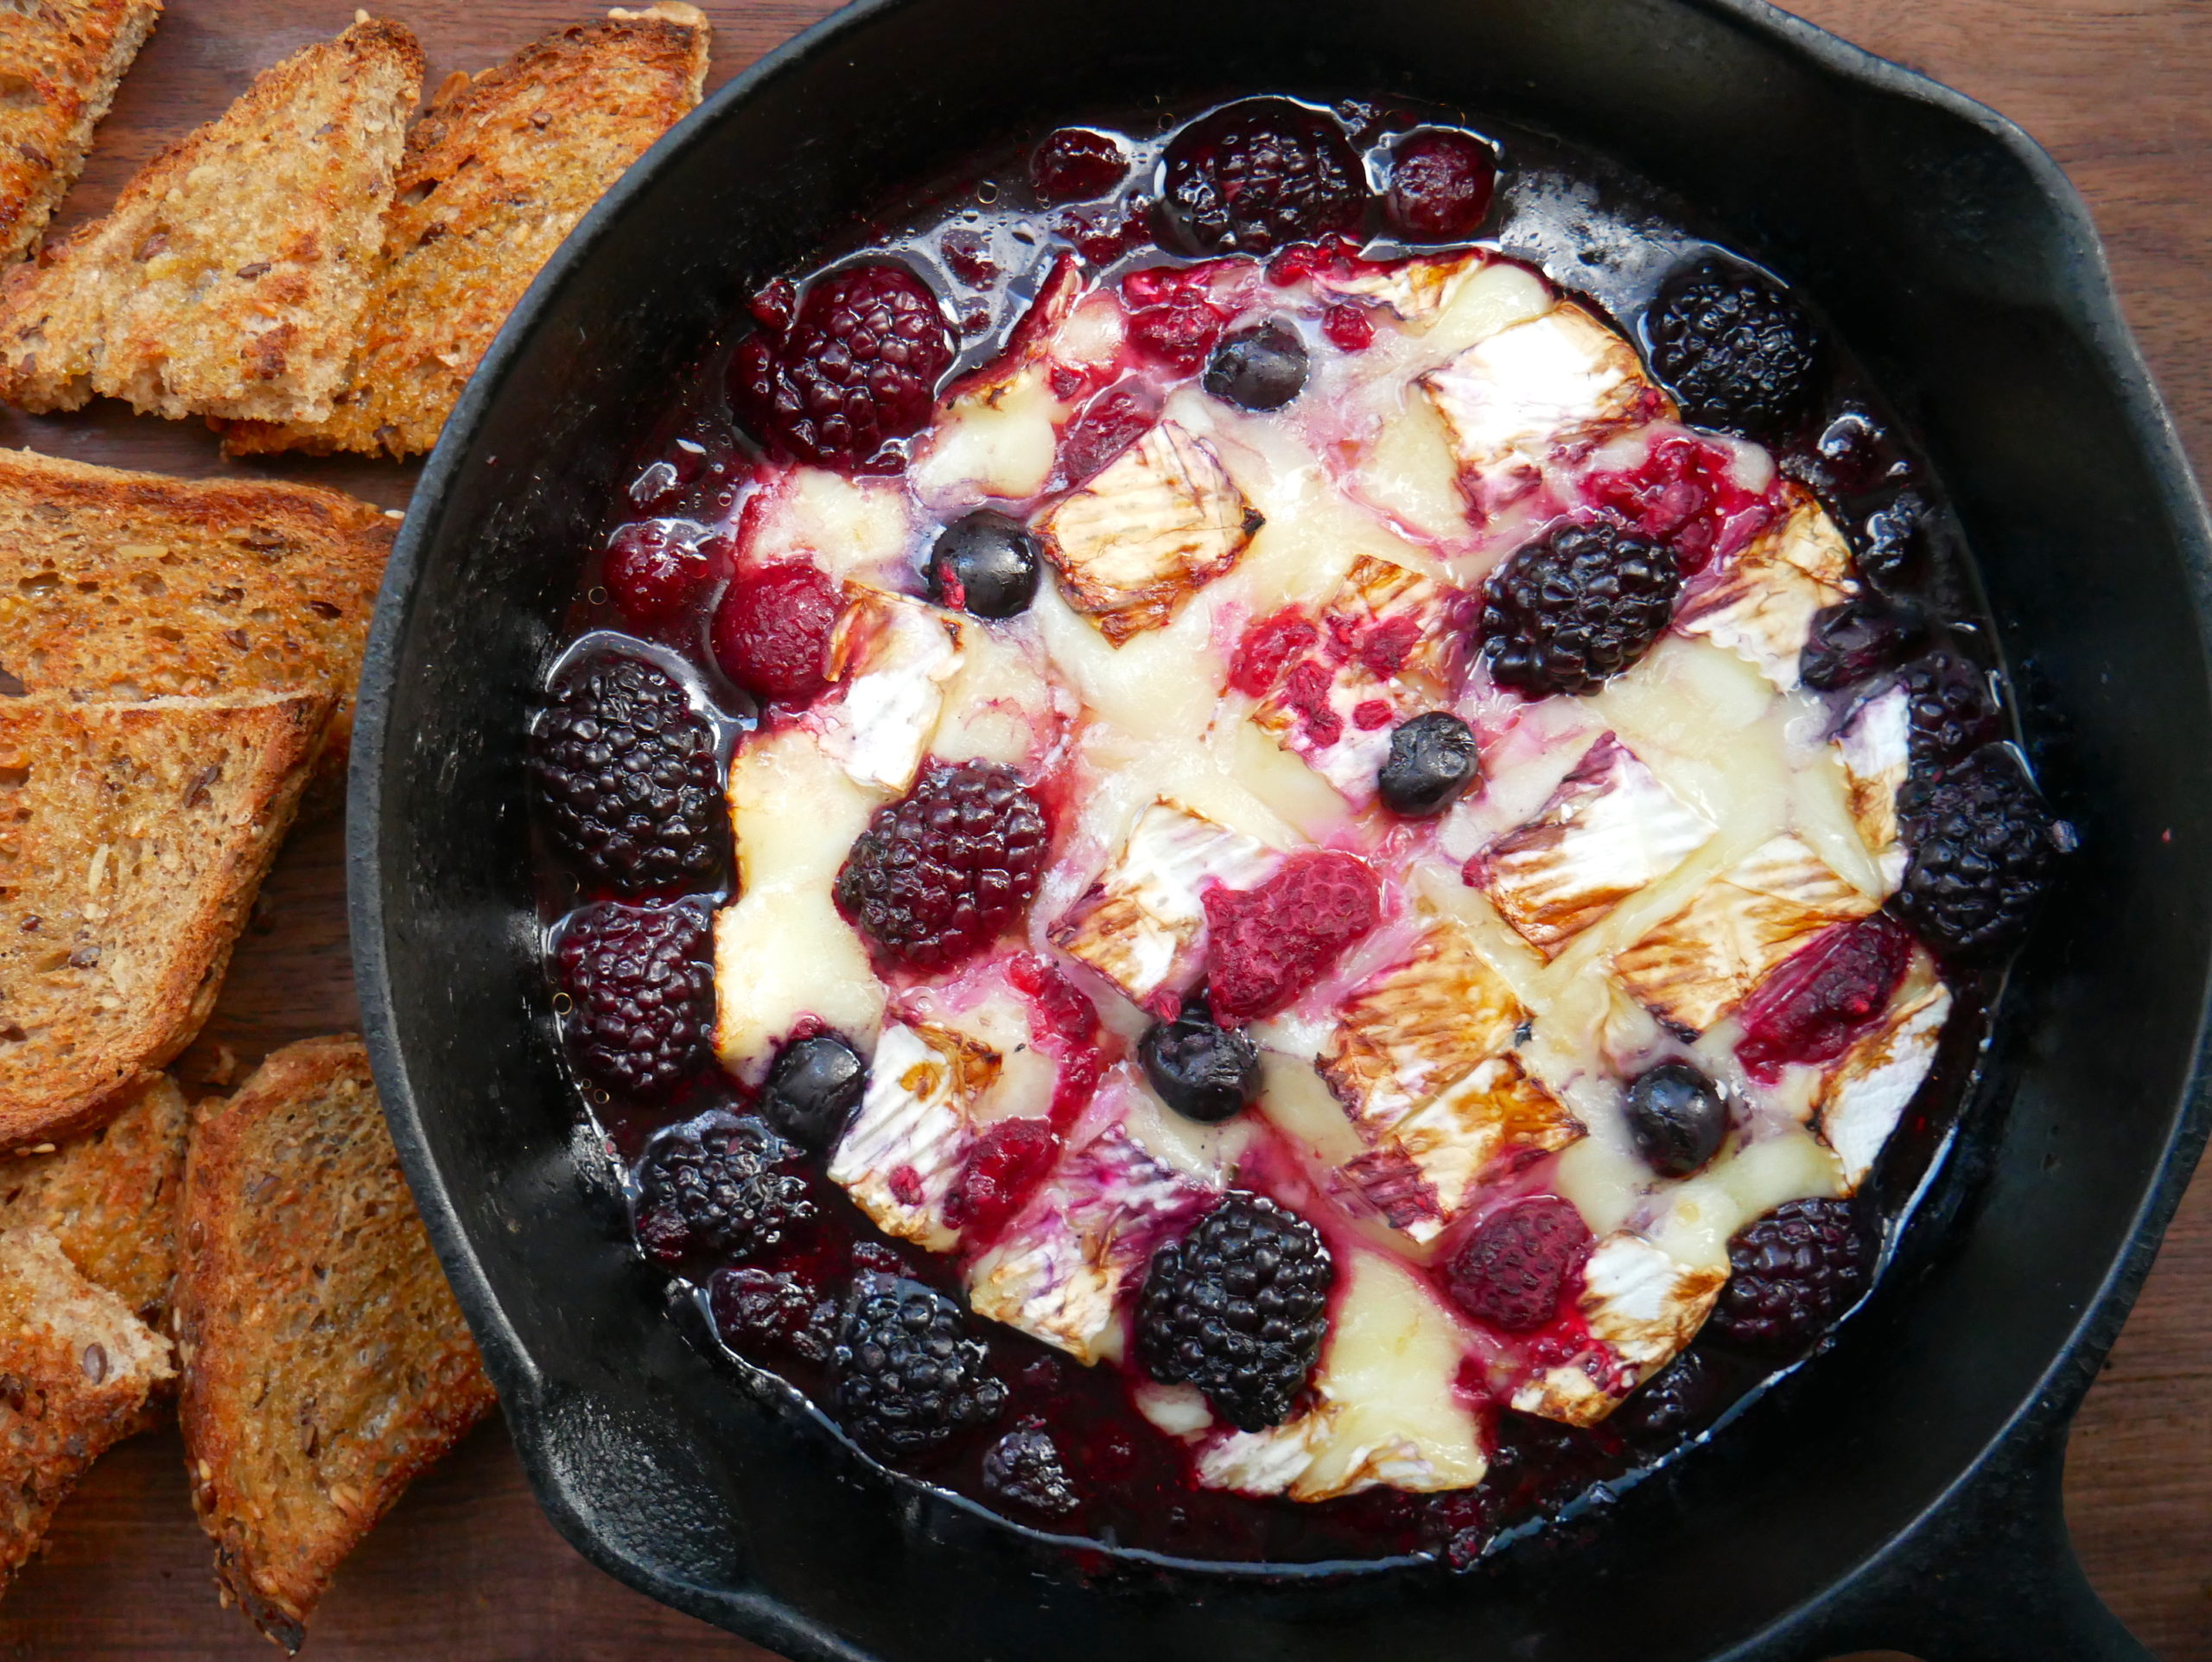 balsamic berry baked brie in a skillet with toast